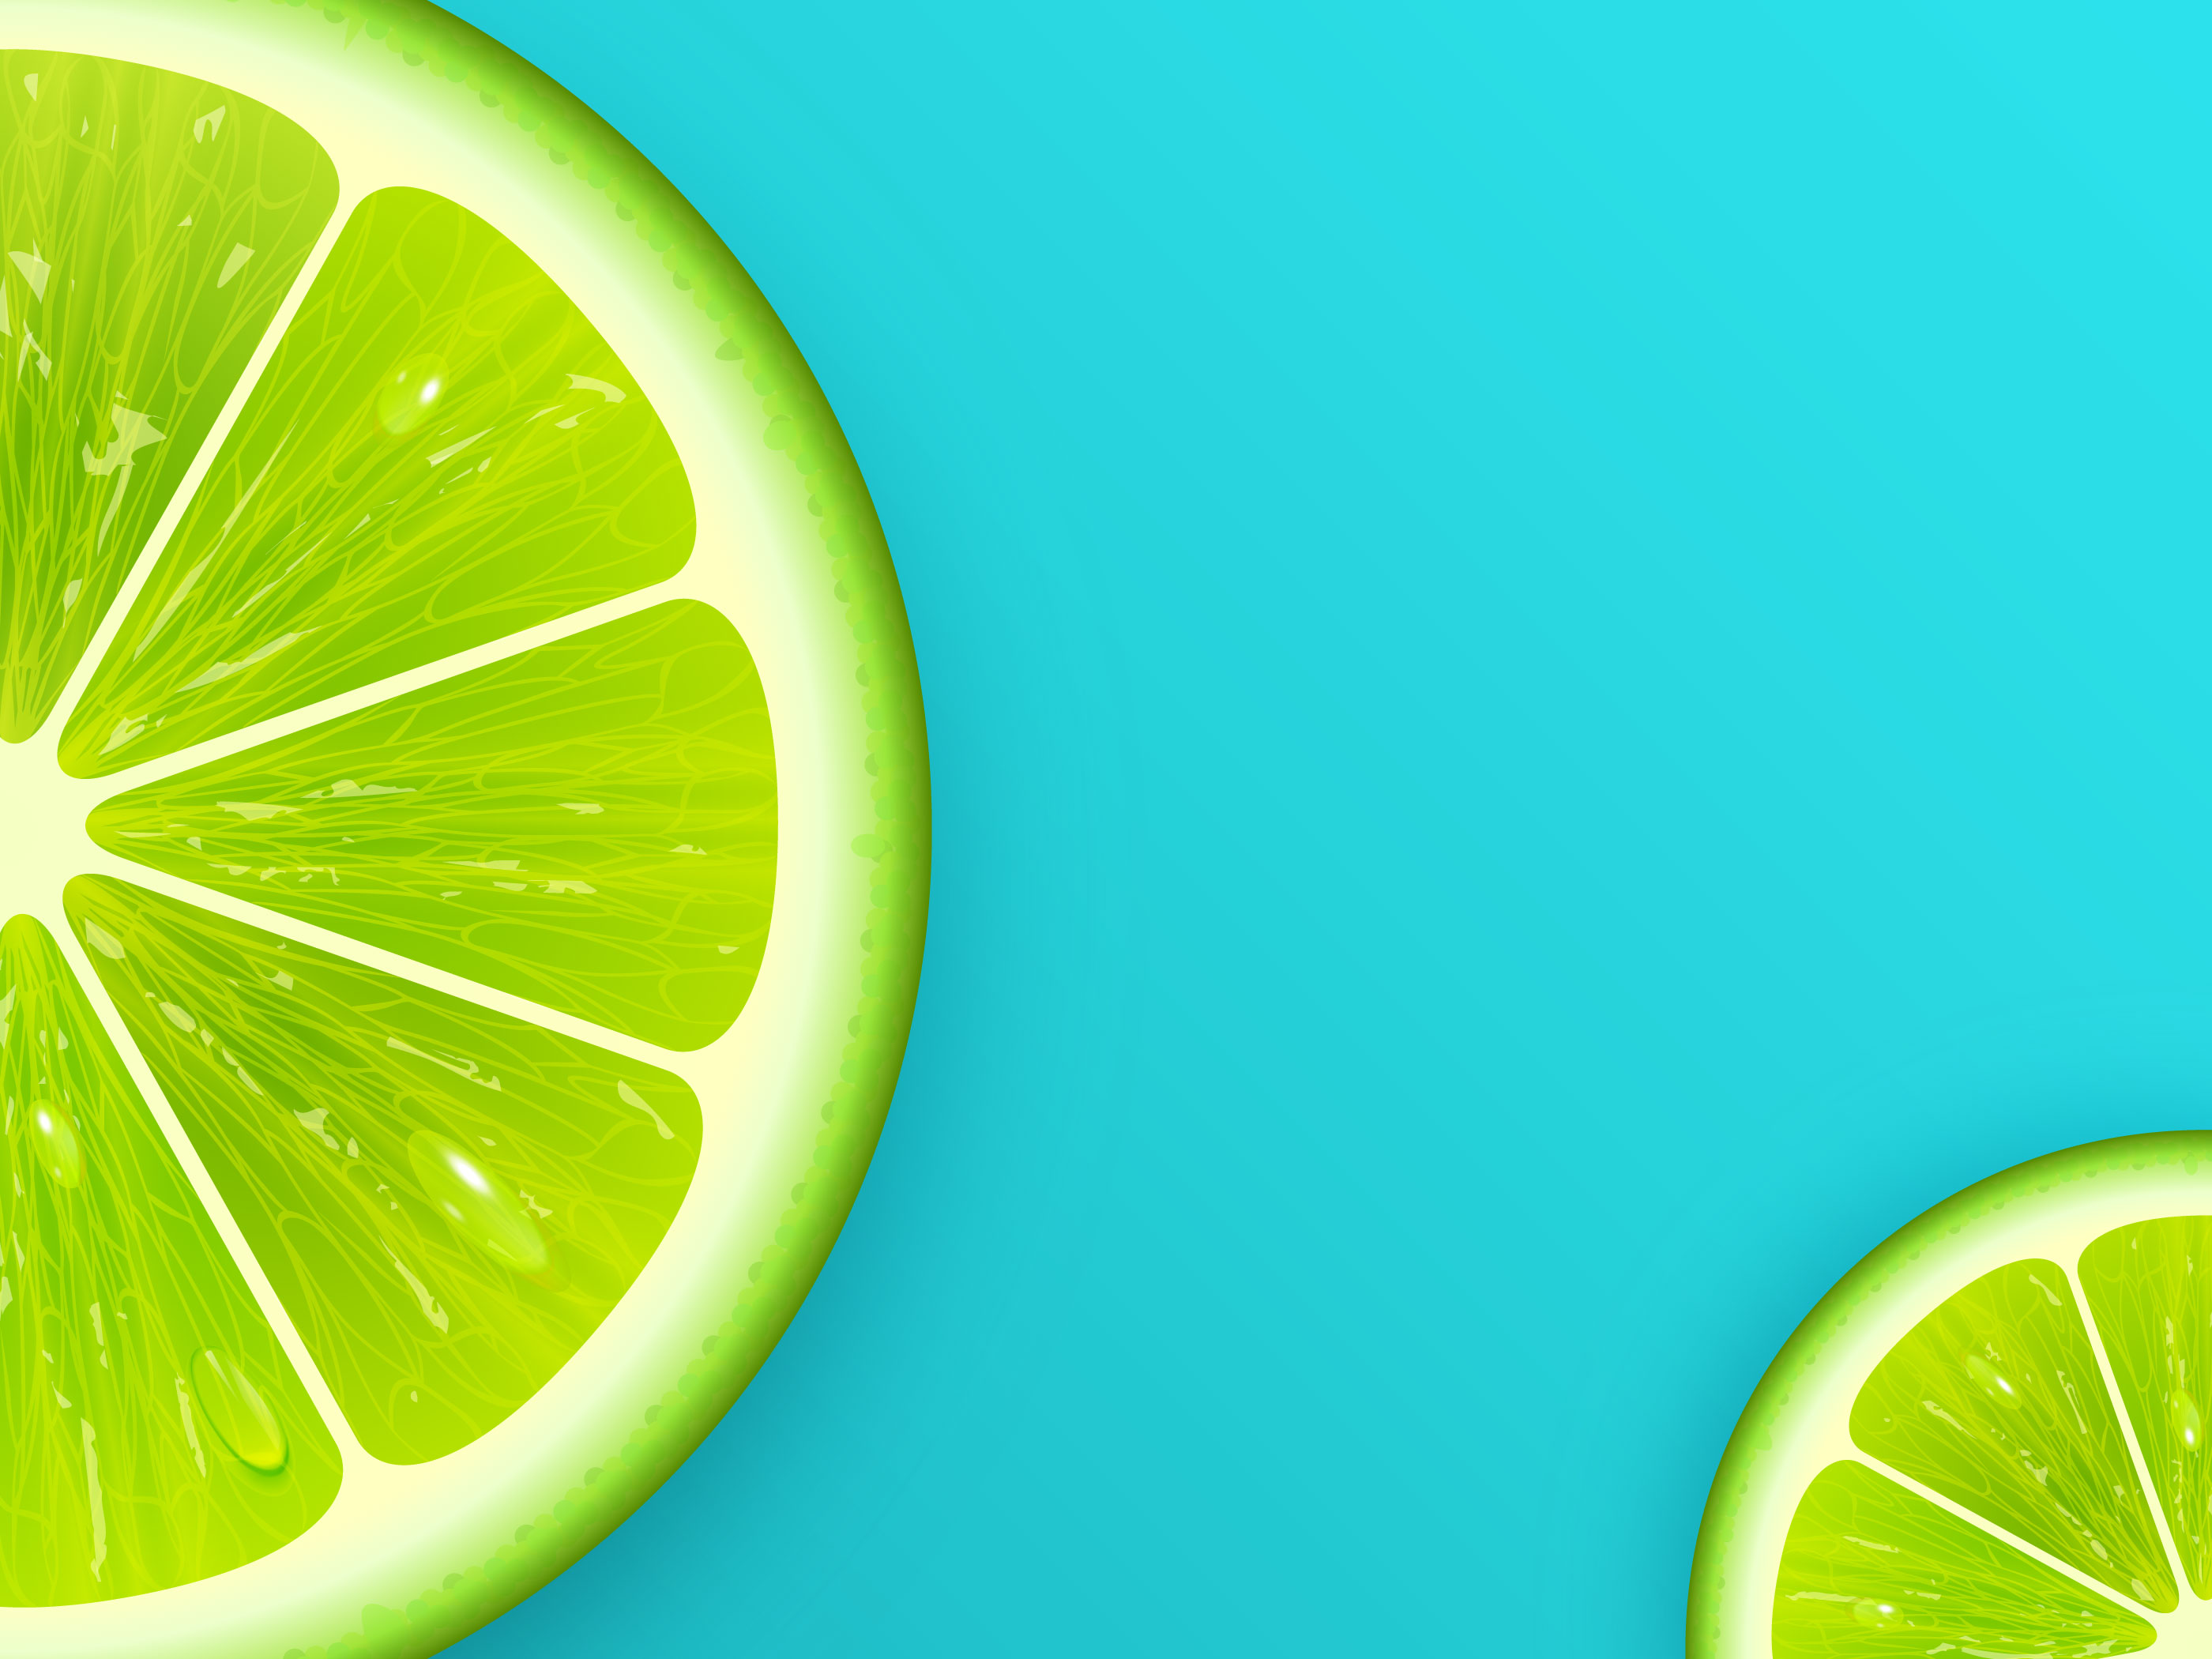 Lime Slice On Teal Vector Background - Download Free Vectors, Clipart Graphics ...